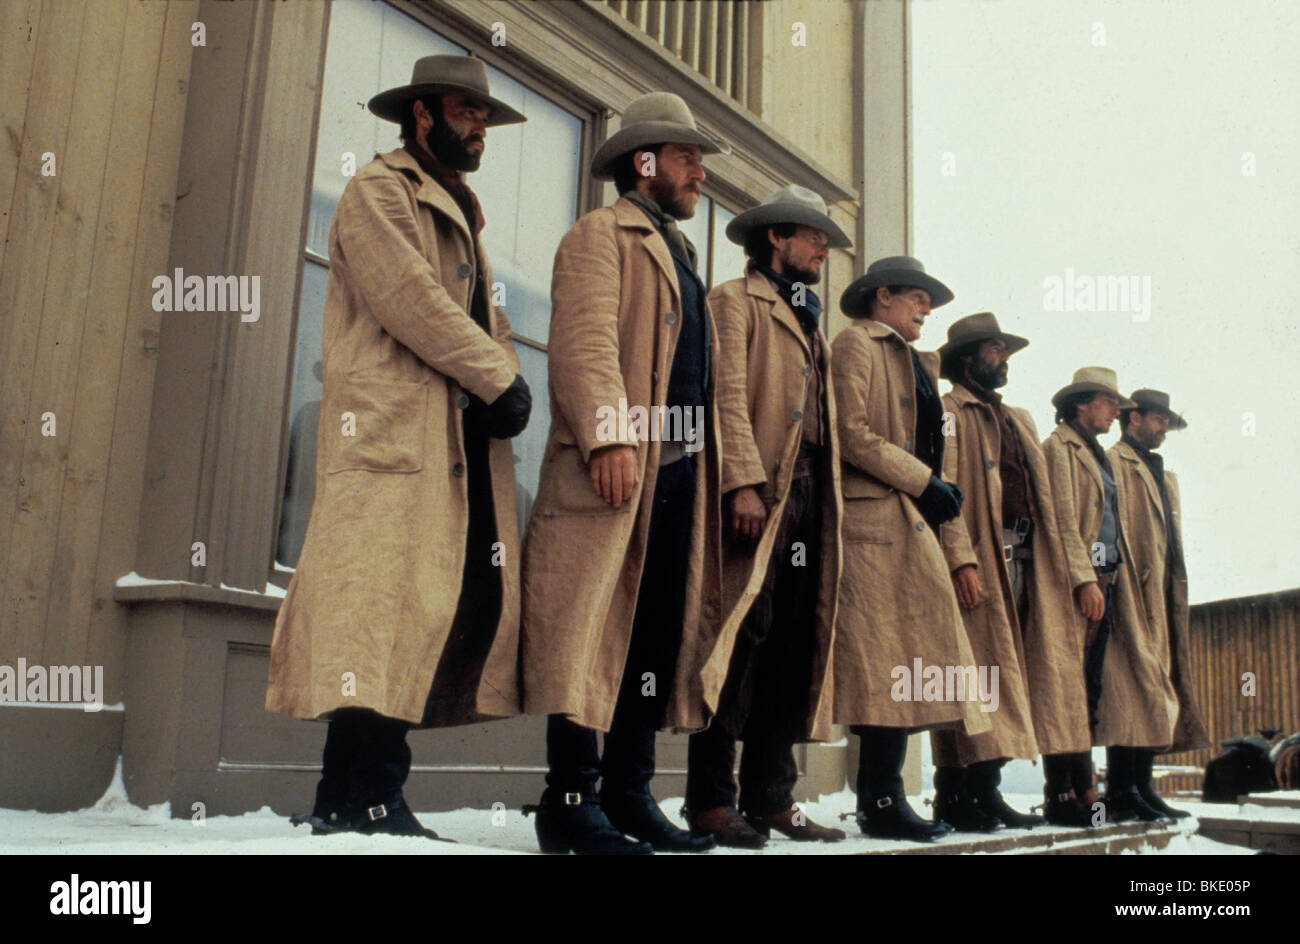 PALE RIDER (1985) JOHN DENNIS JOHNSTON, ROBERT WINLEY, JACK RADOSTA, JOHN RUSSELL, BILLY DRAGO PLR 097 - Stock Image